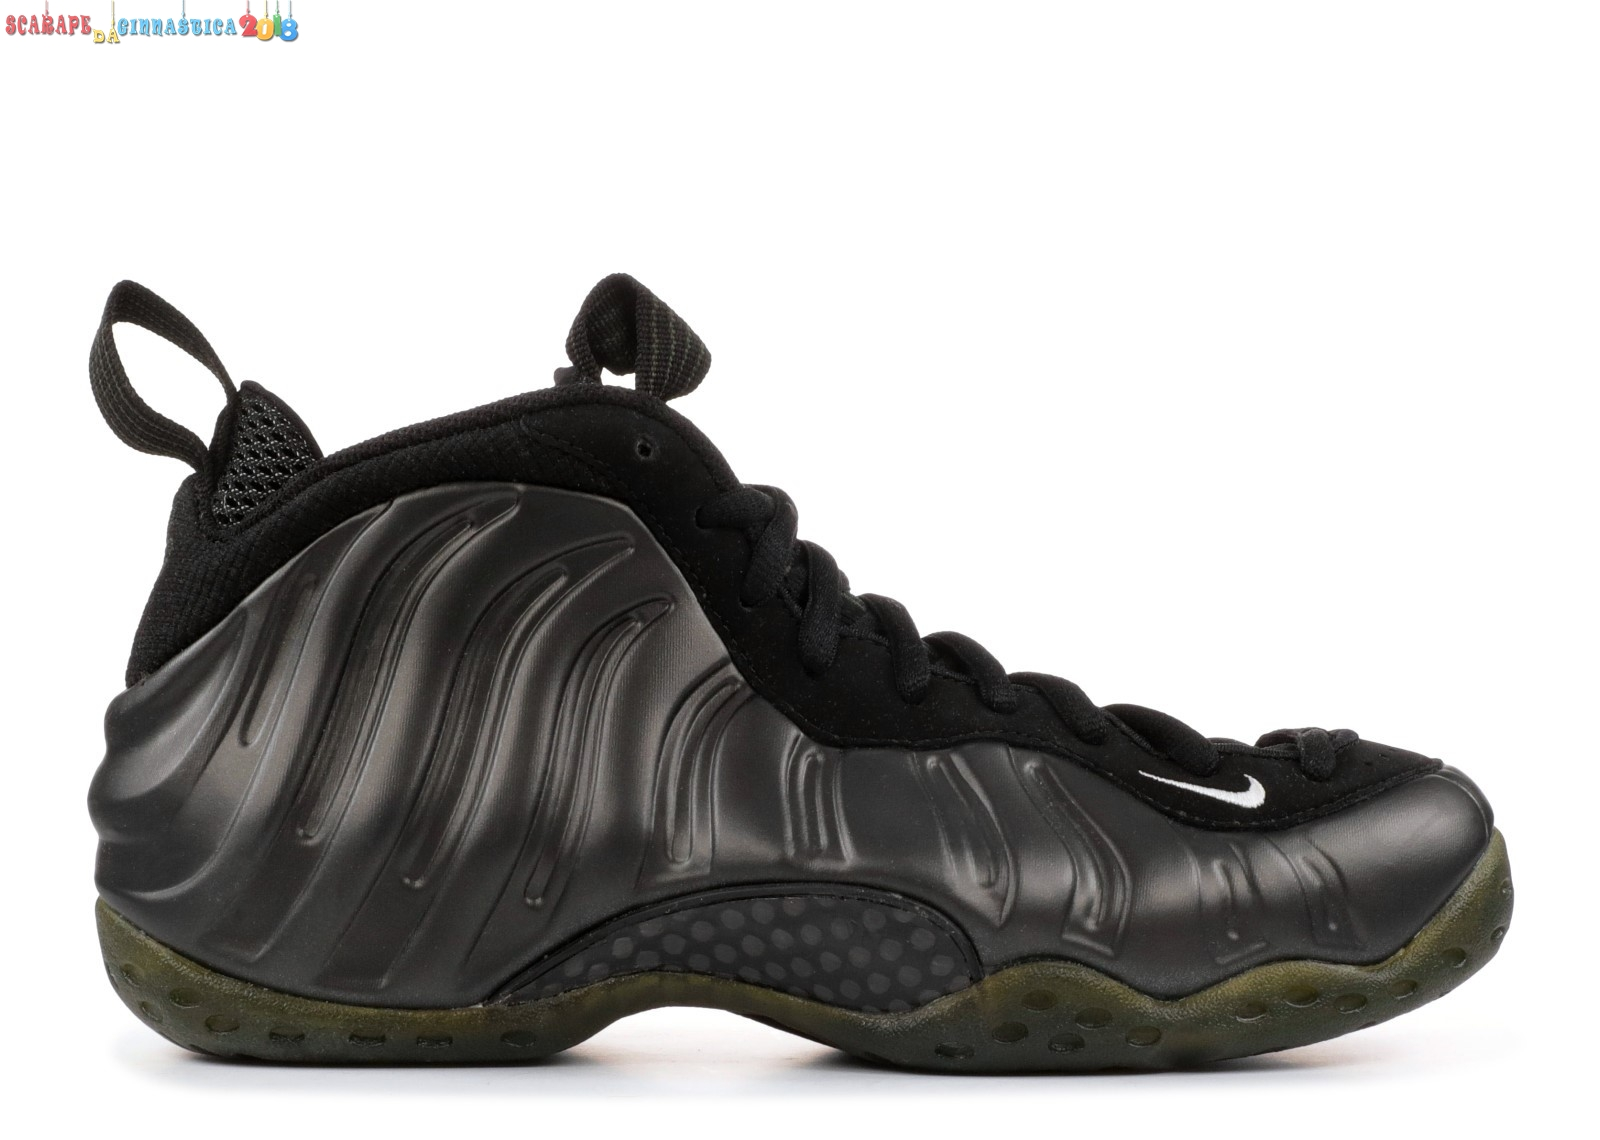 Nike Air Foamposite One Nero (314996-031) - Uomo Replica